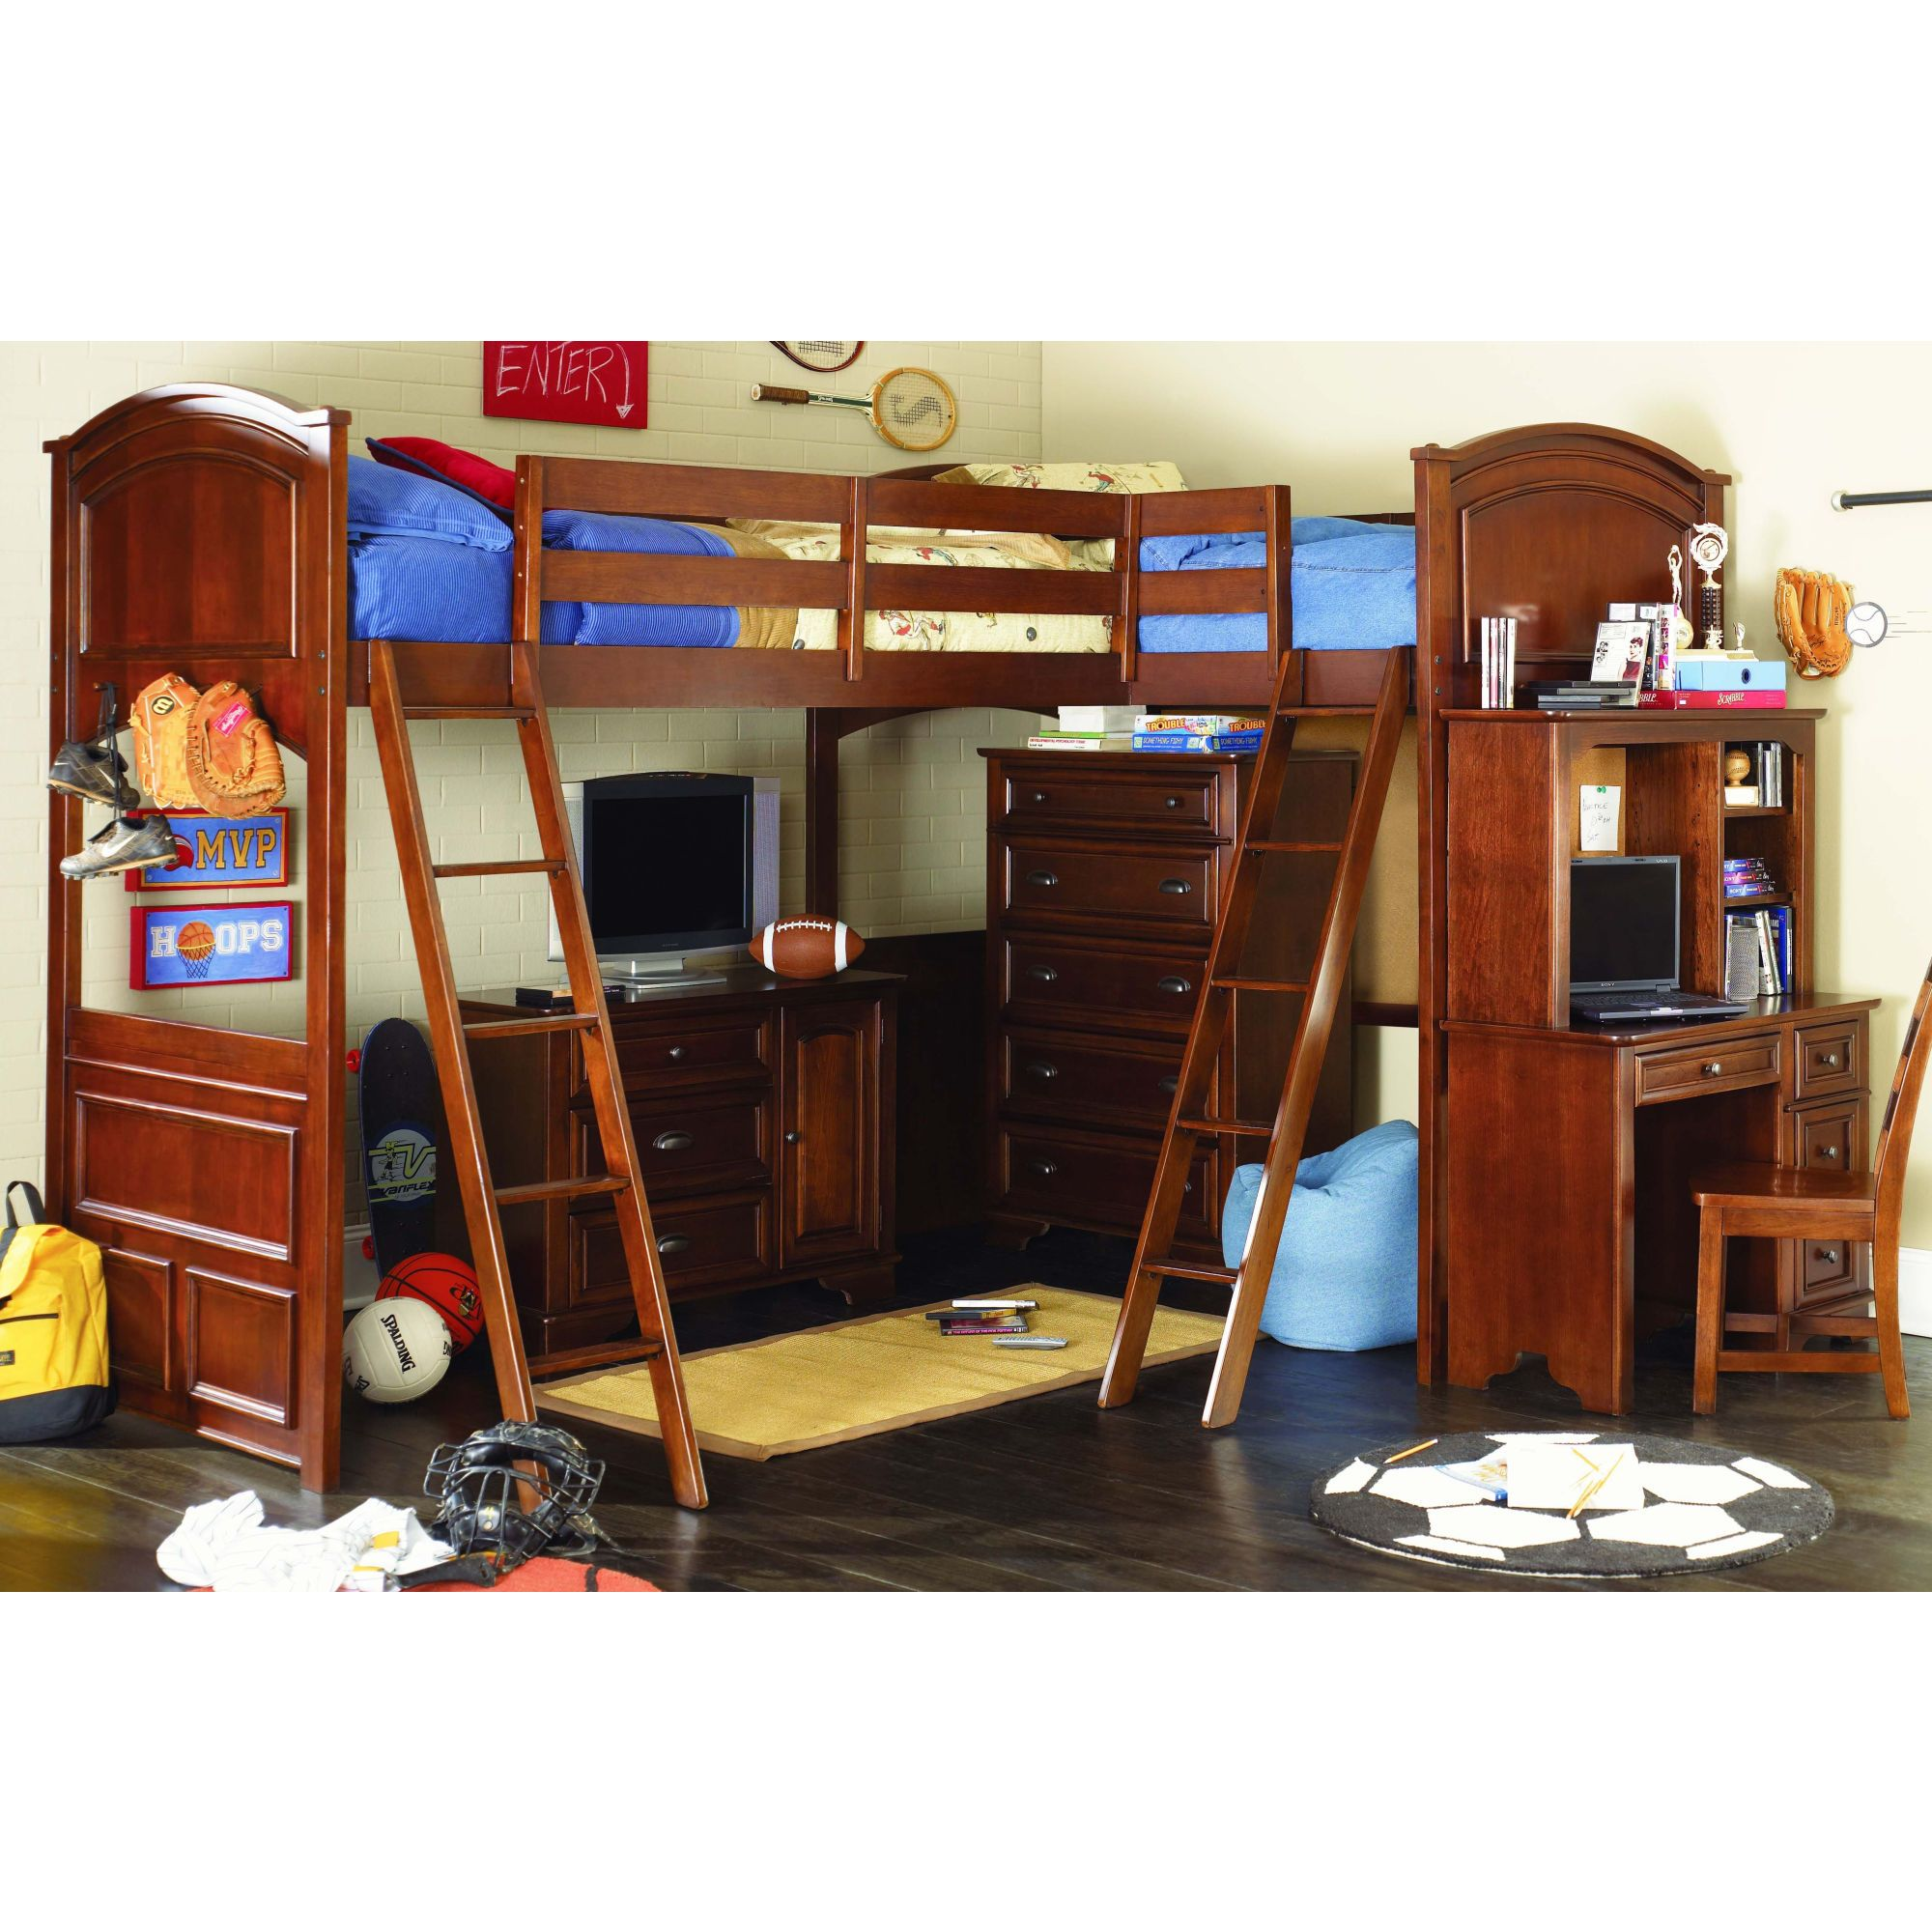 Kids loft bedroom ideas  How fun a double loft bed  YirehuYtzel  Pinterest  Double loft